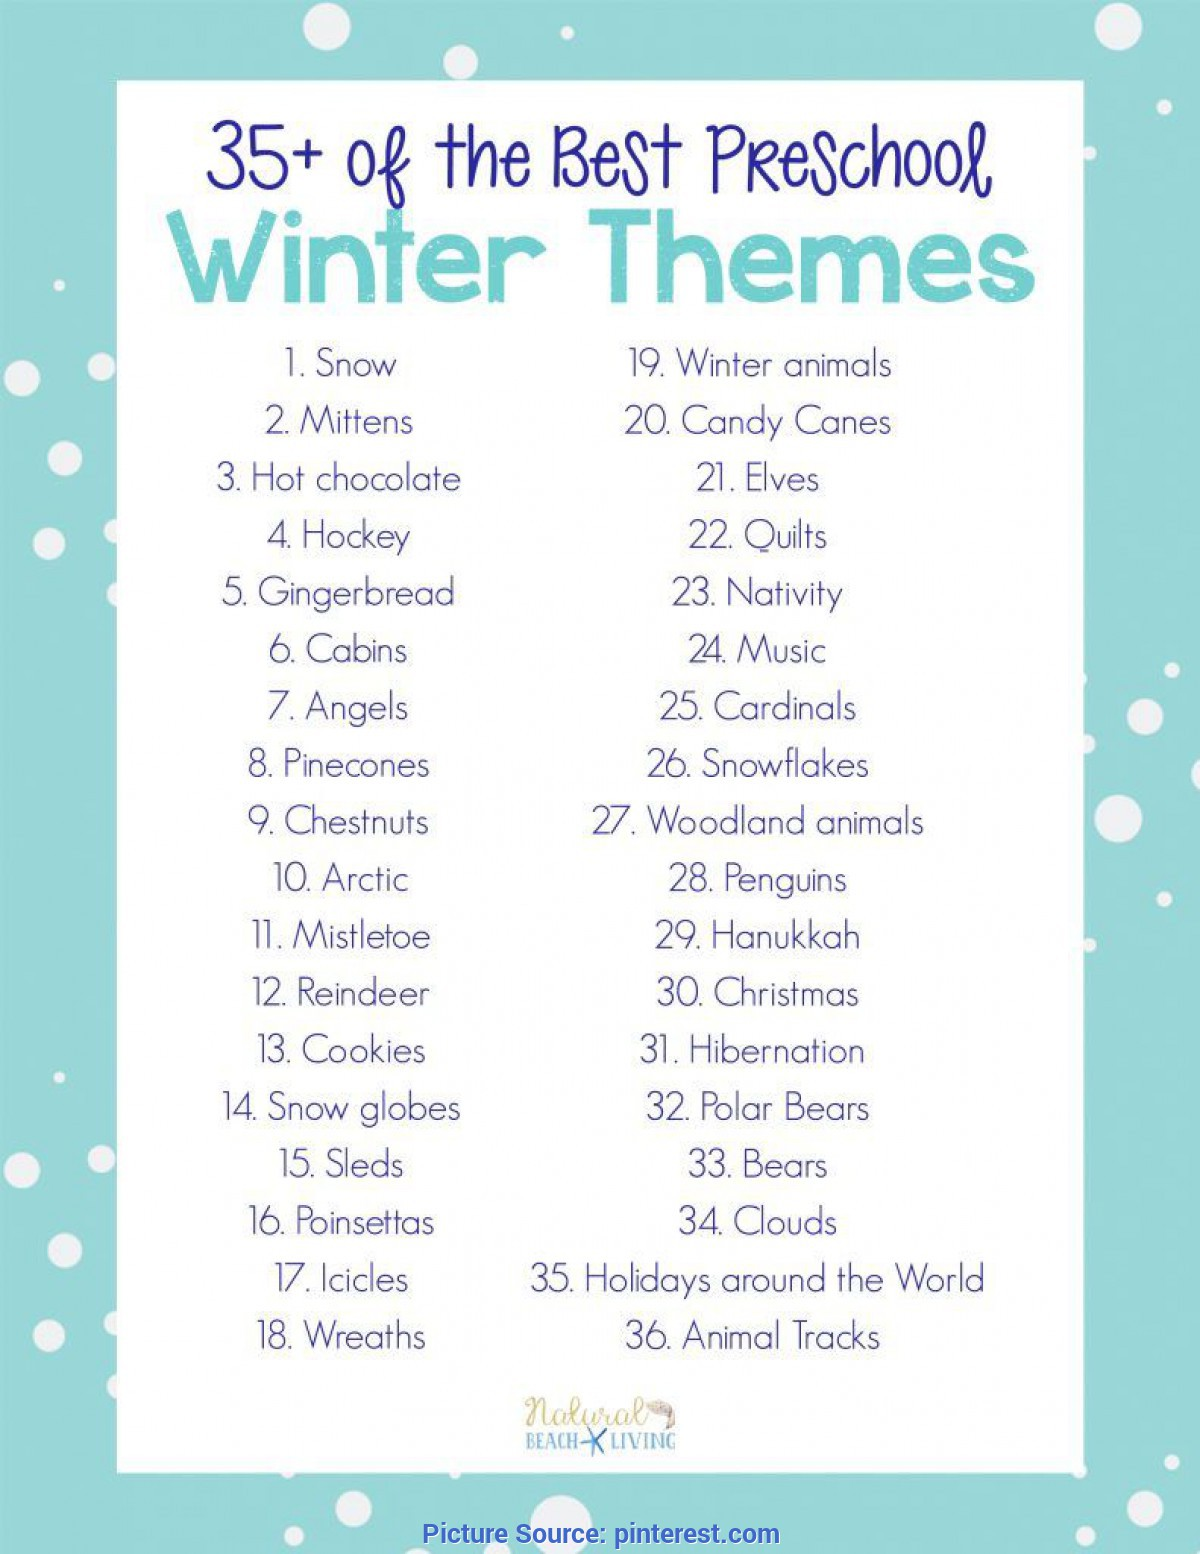 Special Preschool Lesson Plans For Snow 35+ Best Winter Preschool Themes And Lesson Plans   Math Ste